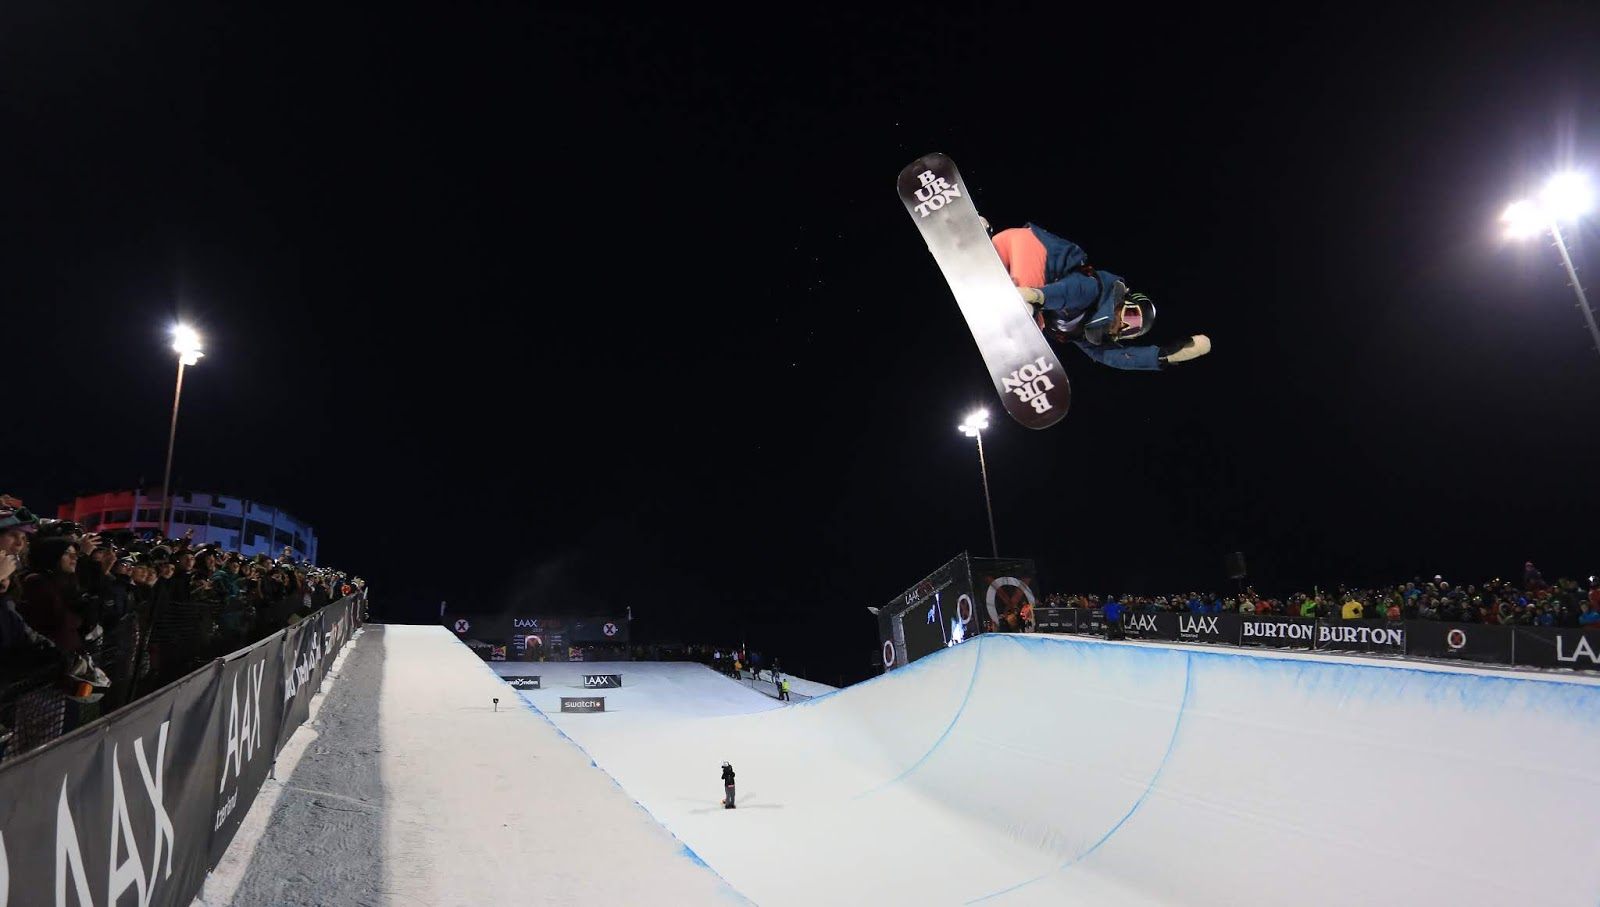 Chloe Kim e Scotty James vencem mais uma no Snowboard Halfpipe